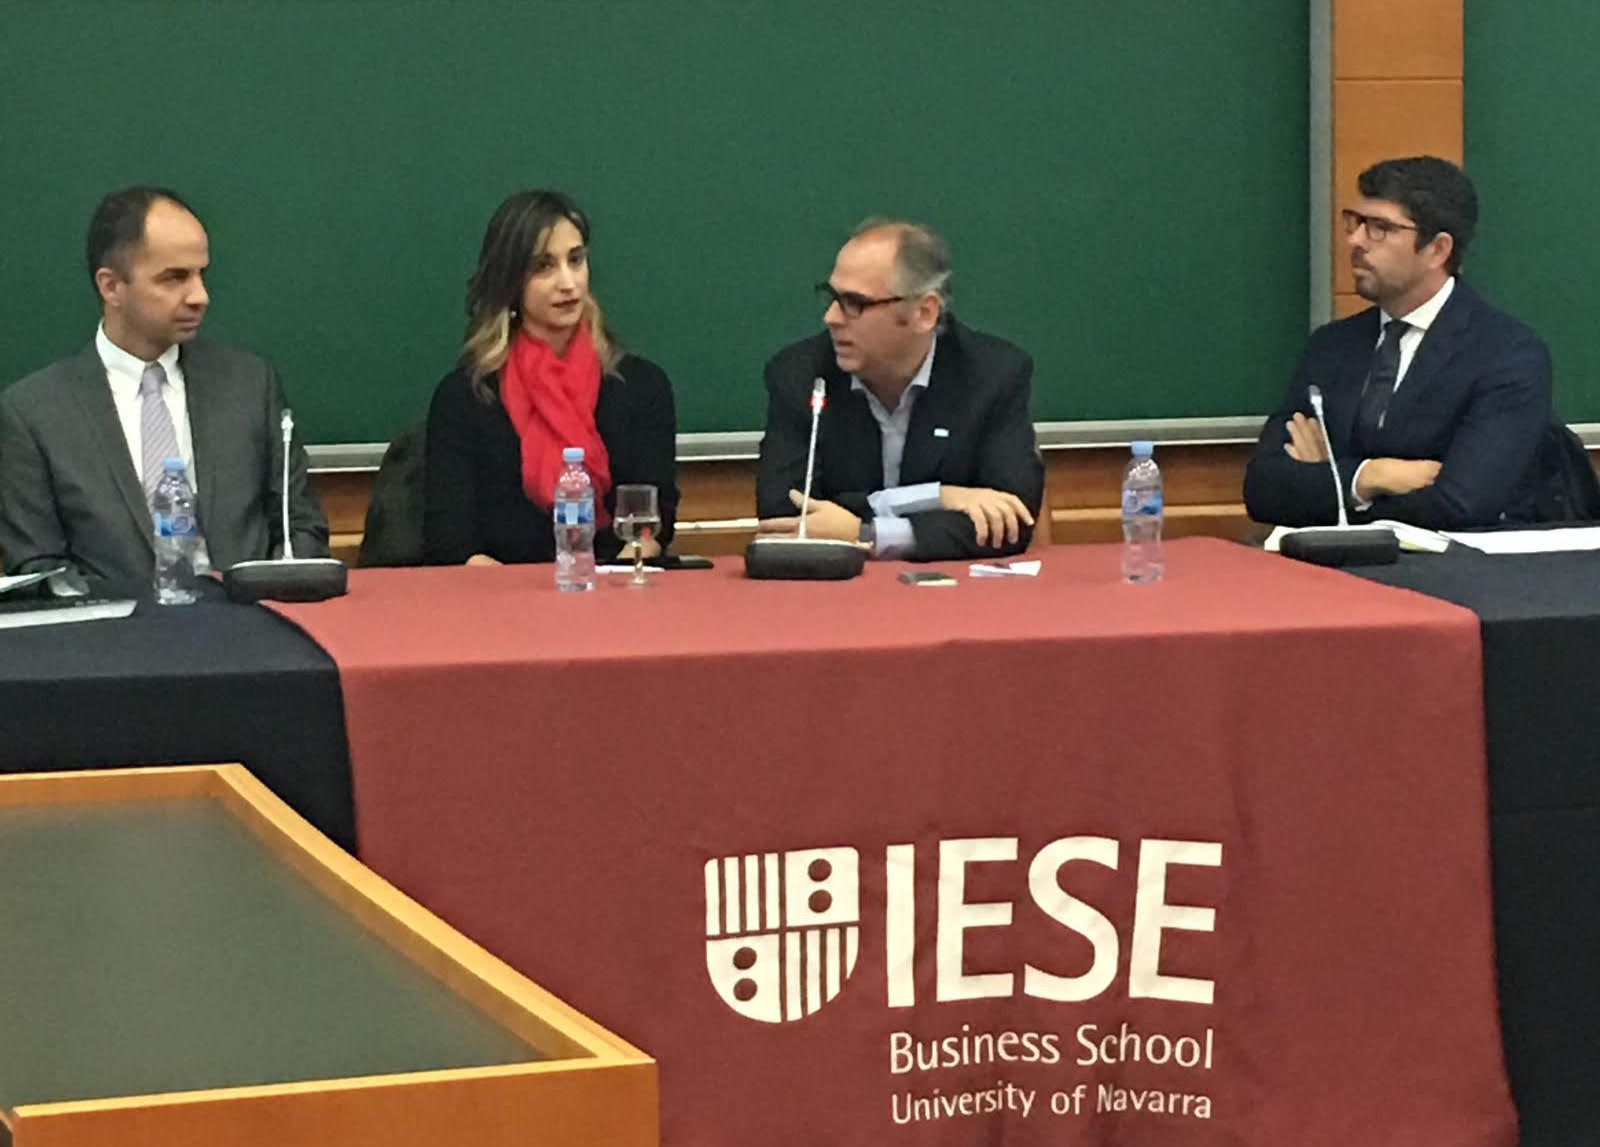 Left to right: Guifré Homedes of Amat Immobiliaris, Constanza Maya of Engel & Völkers, François Carriere of Coldwell Banker, and Alex Vaughan of Lucas Fox, Barcelona estate agents